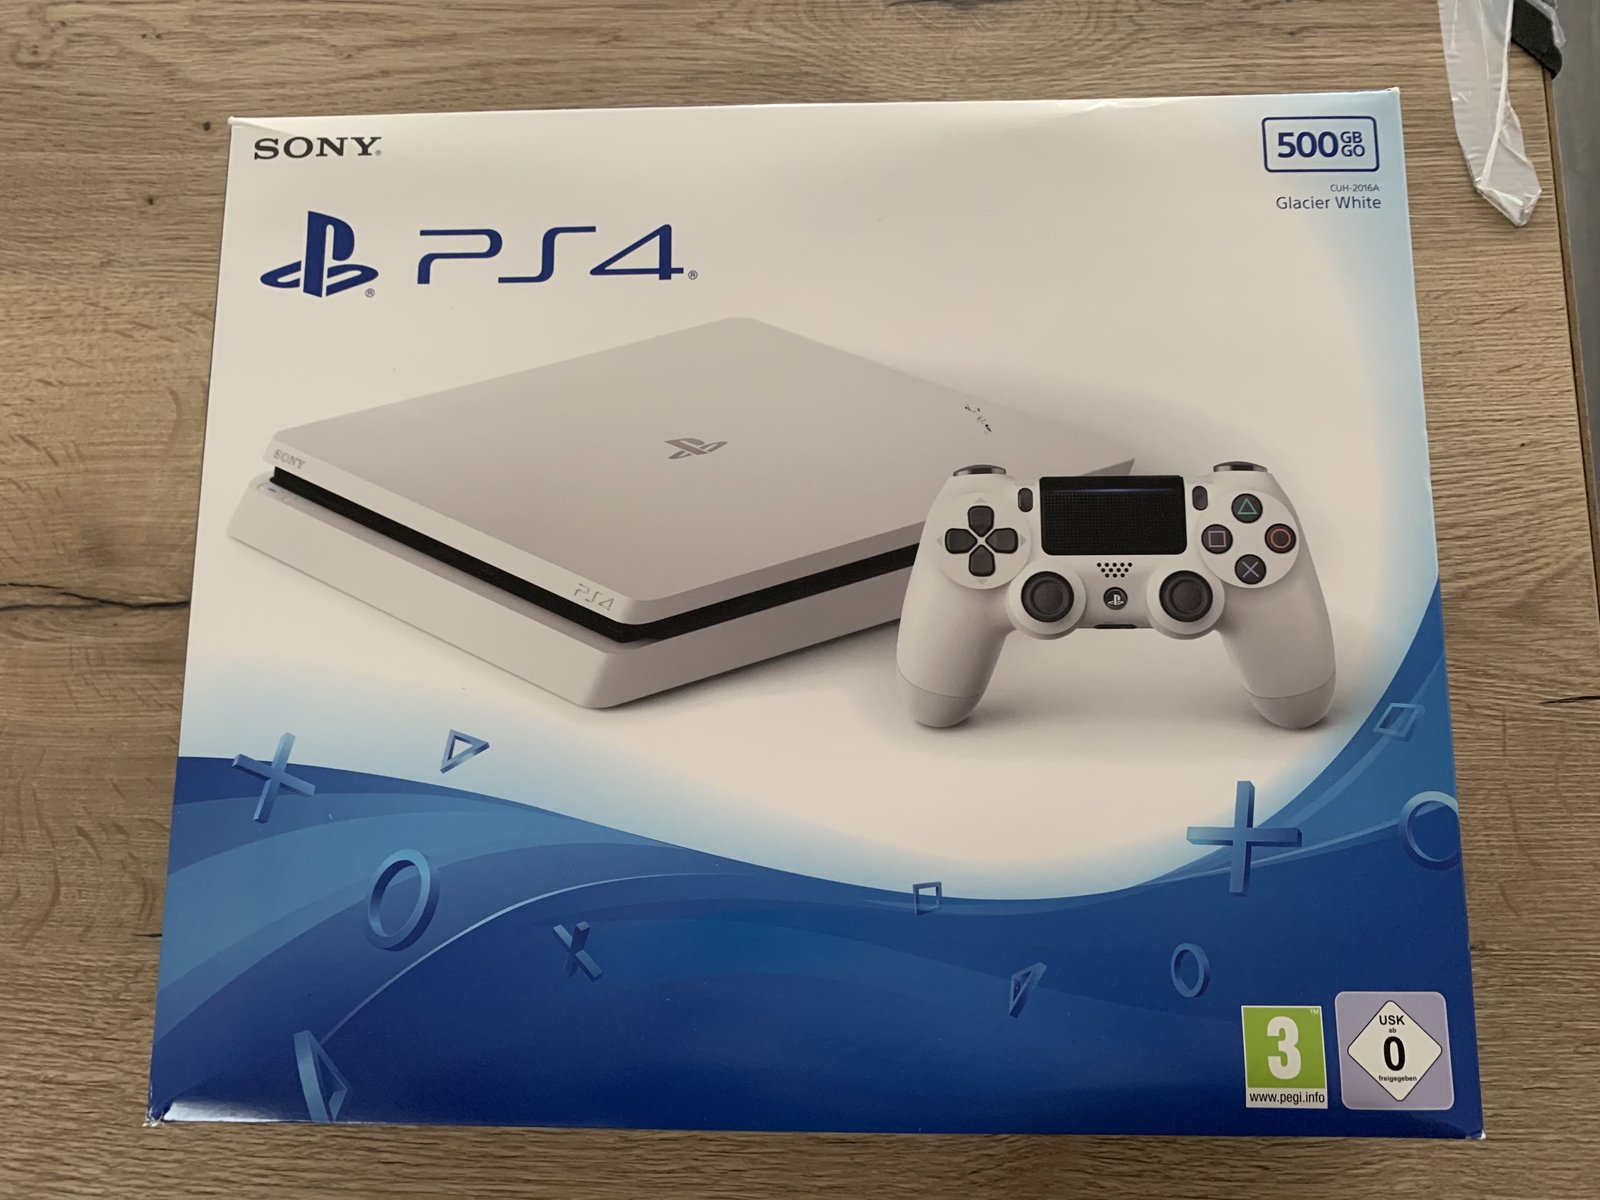 [VDS] Console Sony PS4 Slim Blanche + jeux  201111025020891481